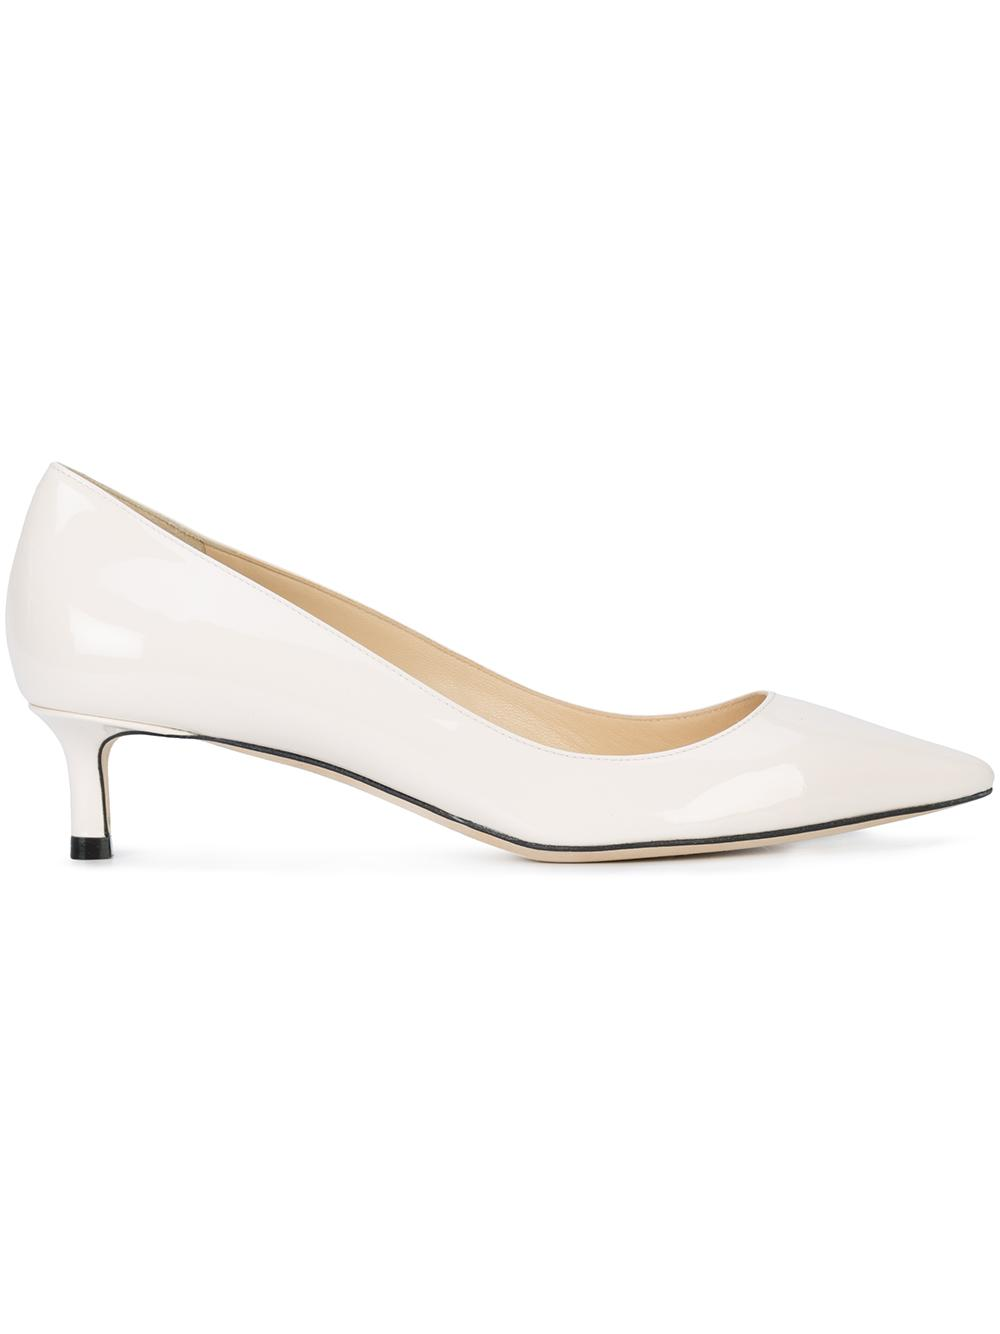 Patent Leather Pointed Toe Heel